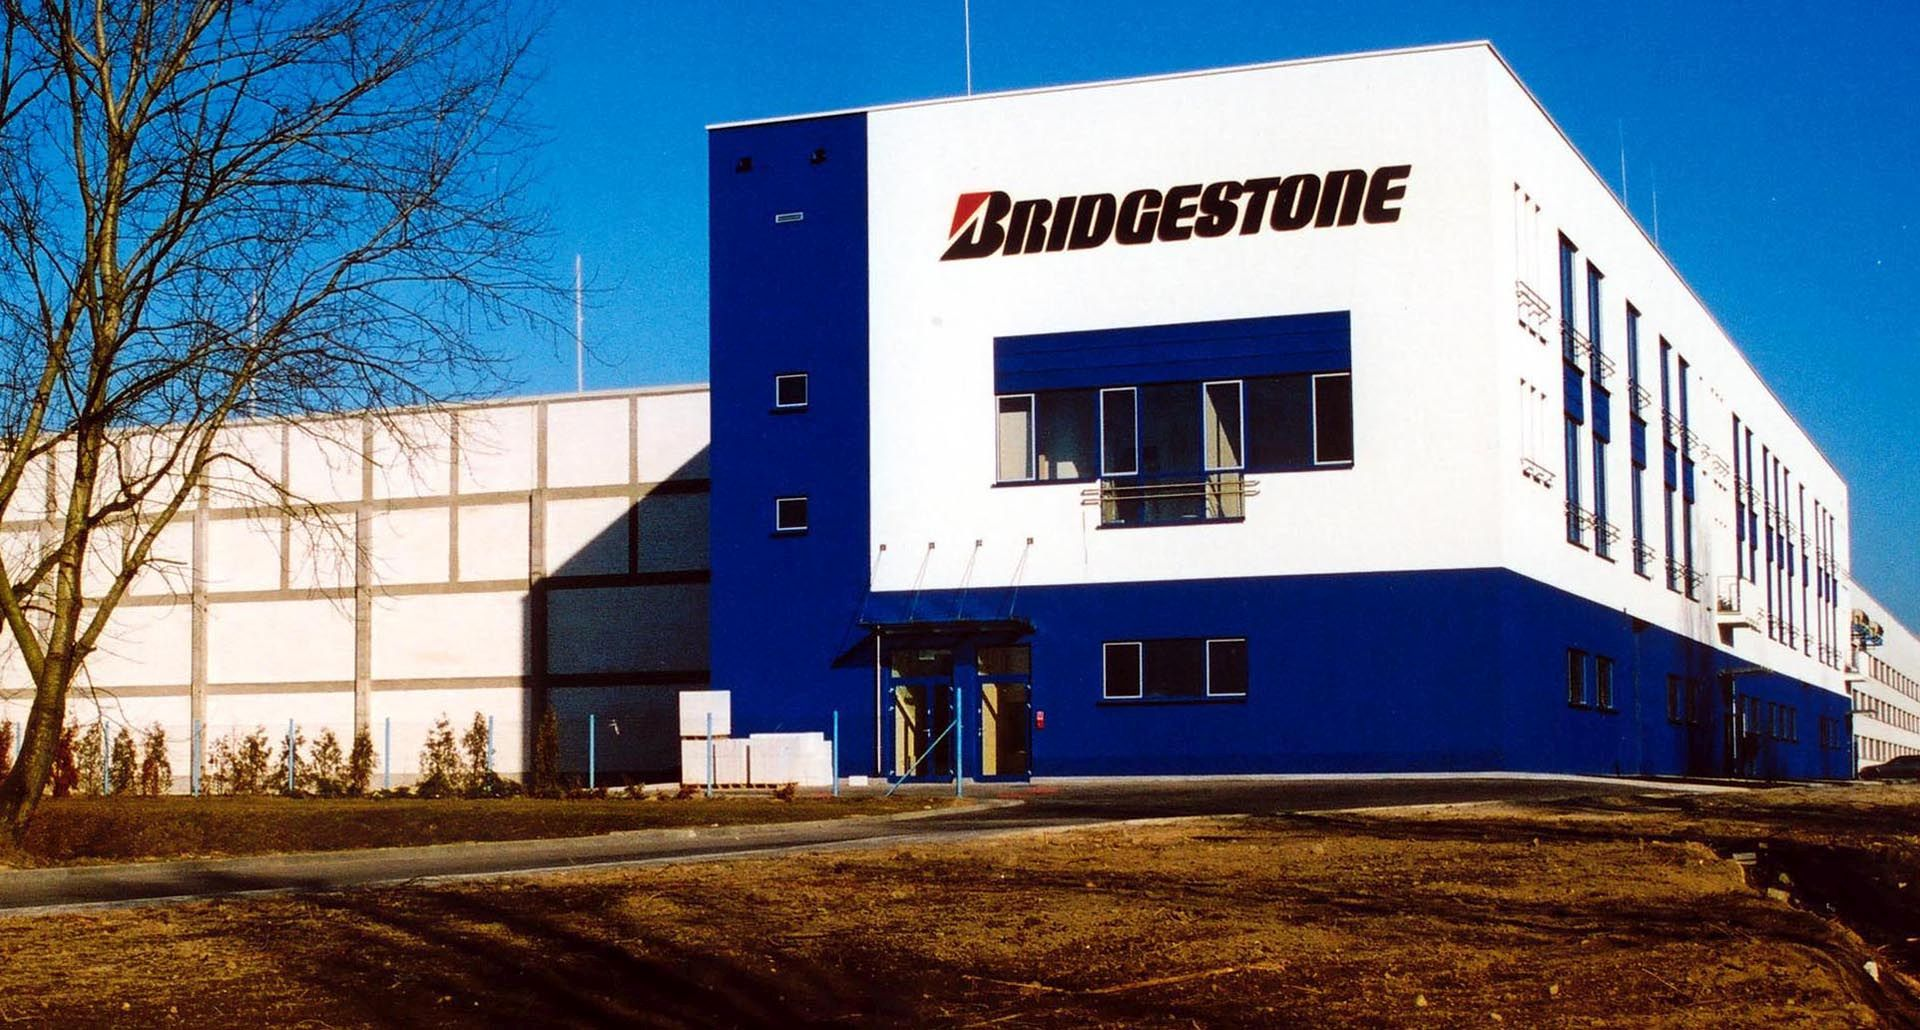 Bridgestone to Invest Euro 160 Million in Polish Plant